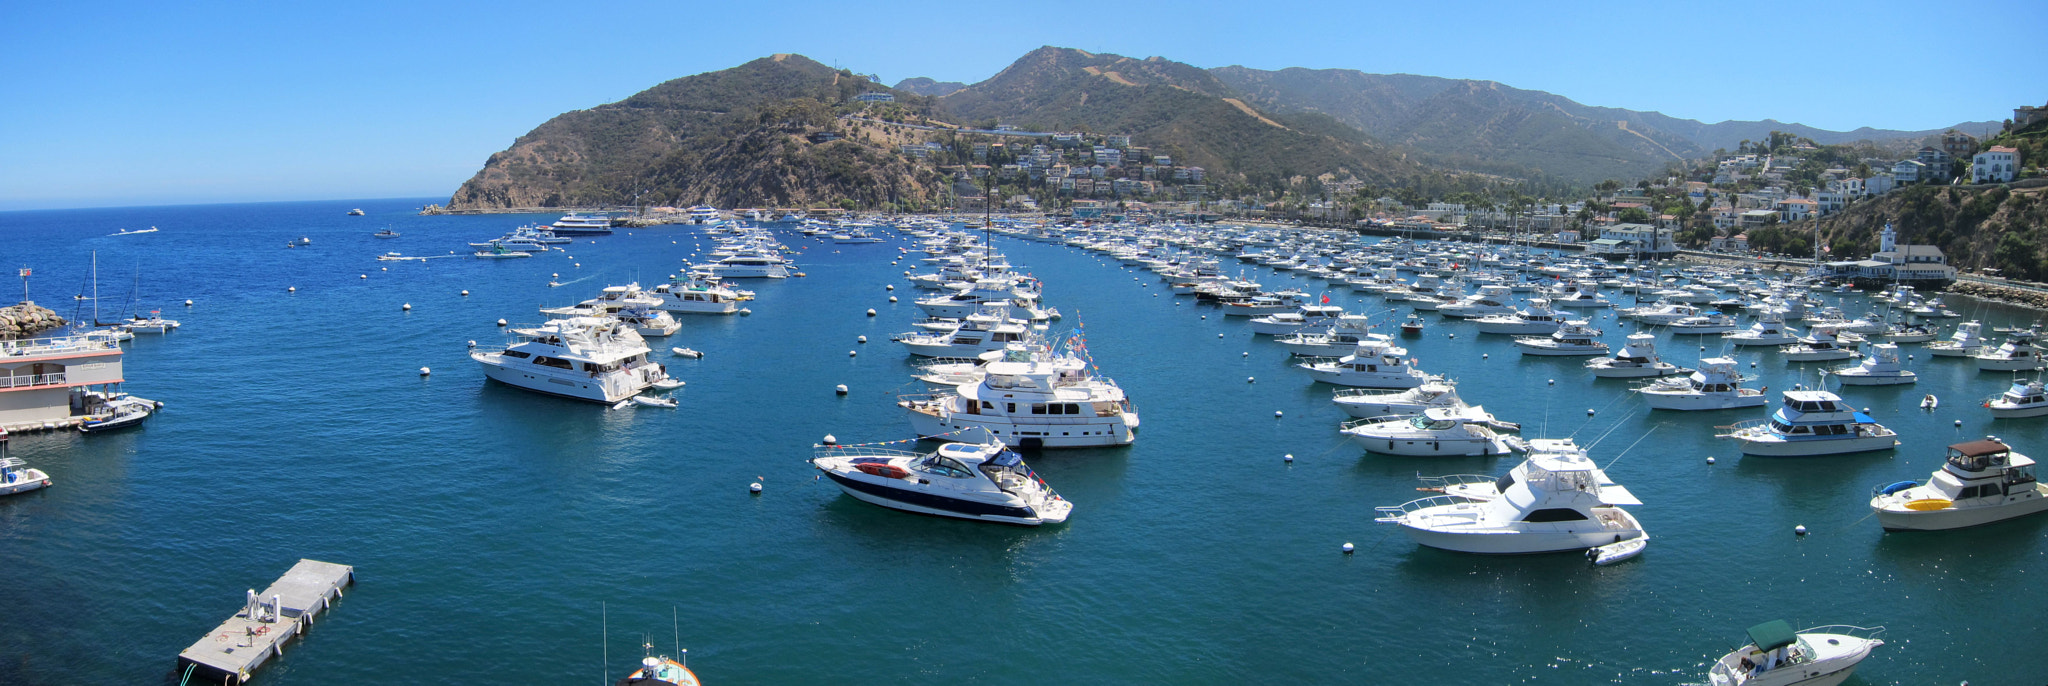 Photograph Avalon, Catalina Island by Frank Chiu on 500px